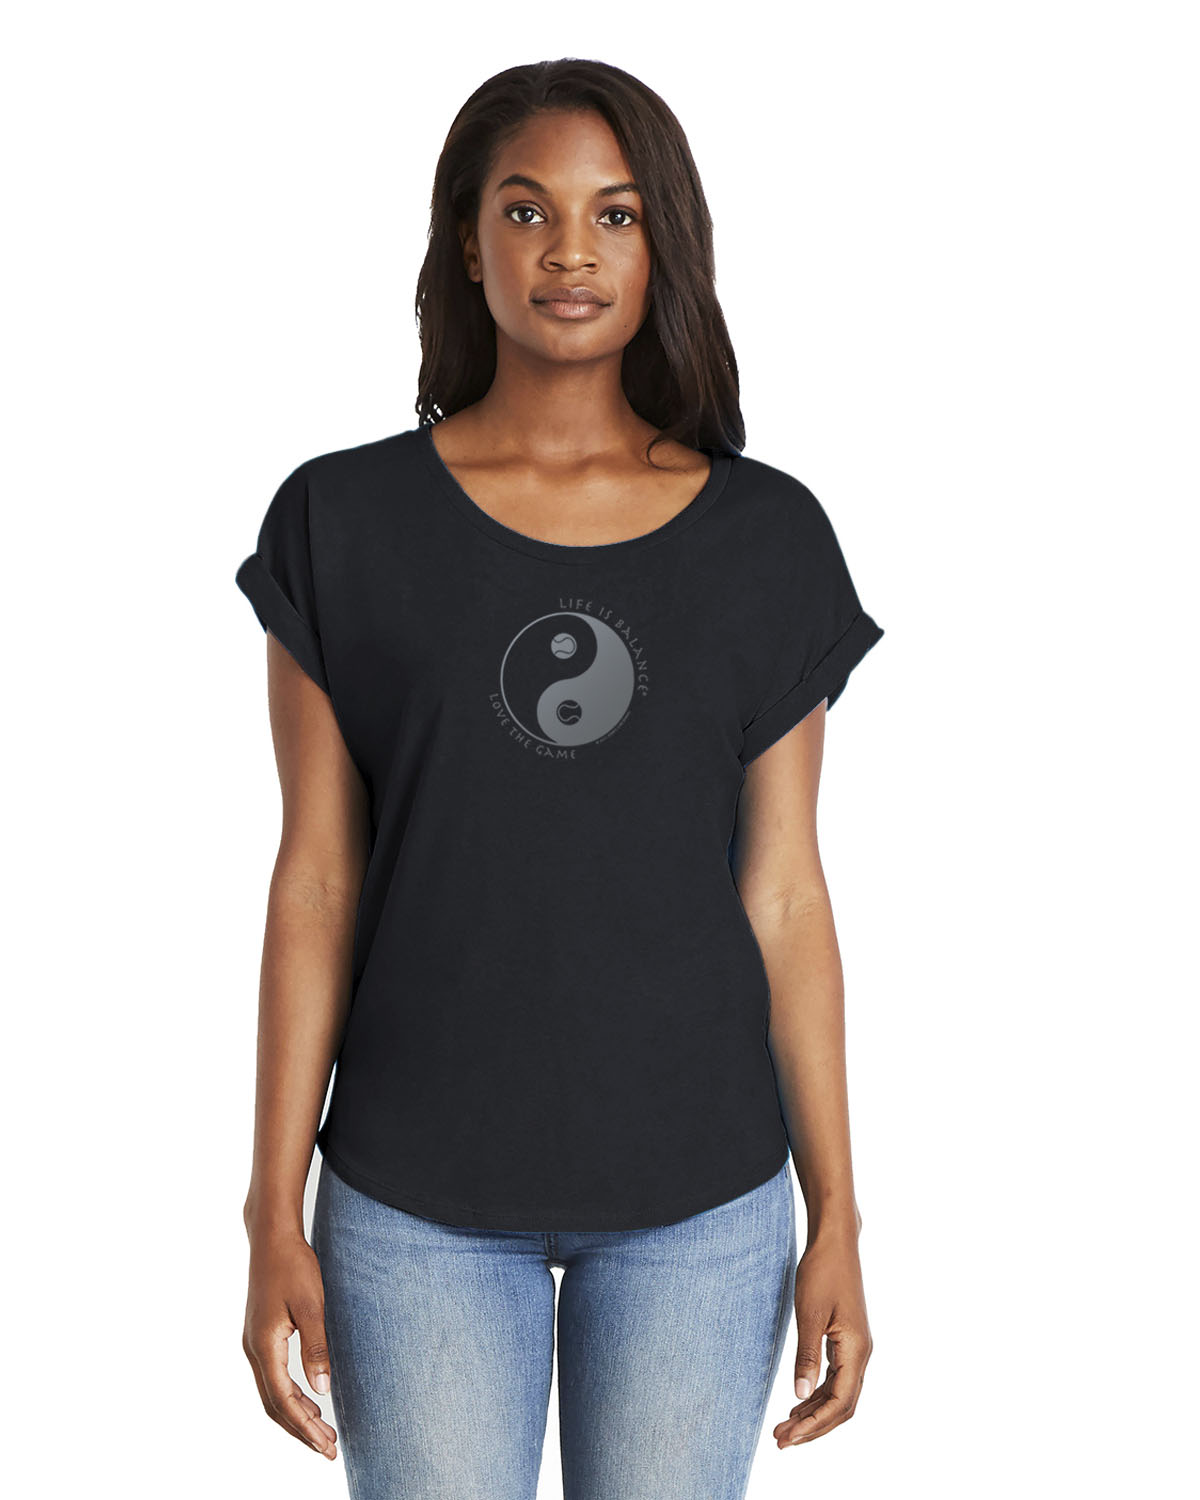 Women's rolled sleeve dolman shirt (black)